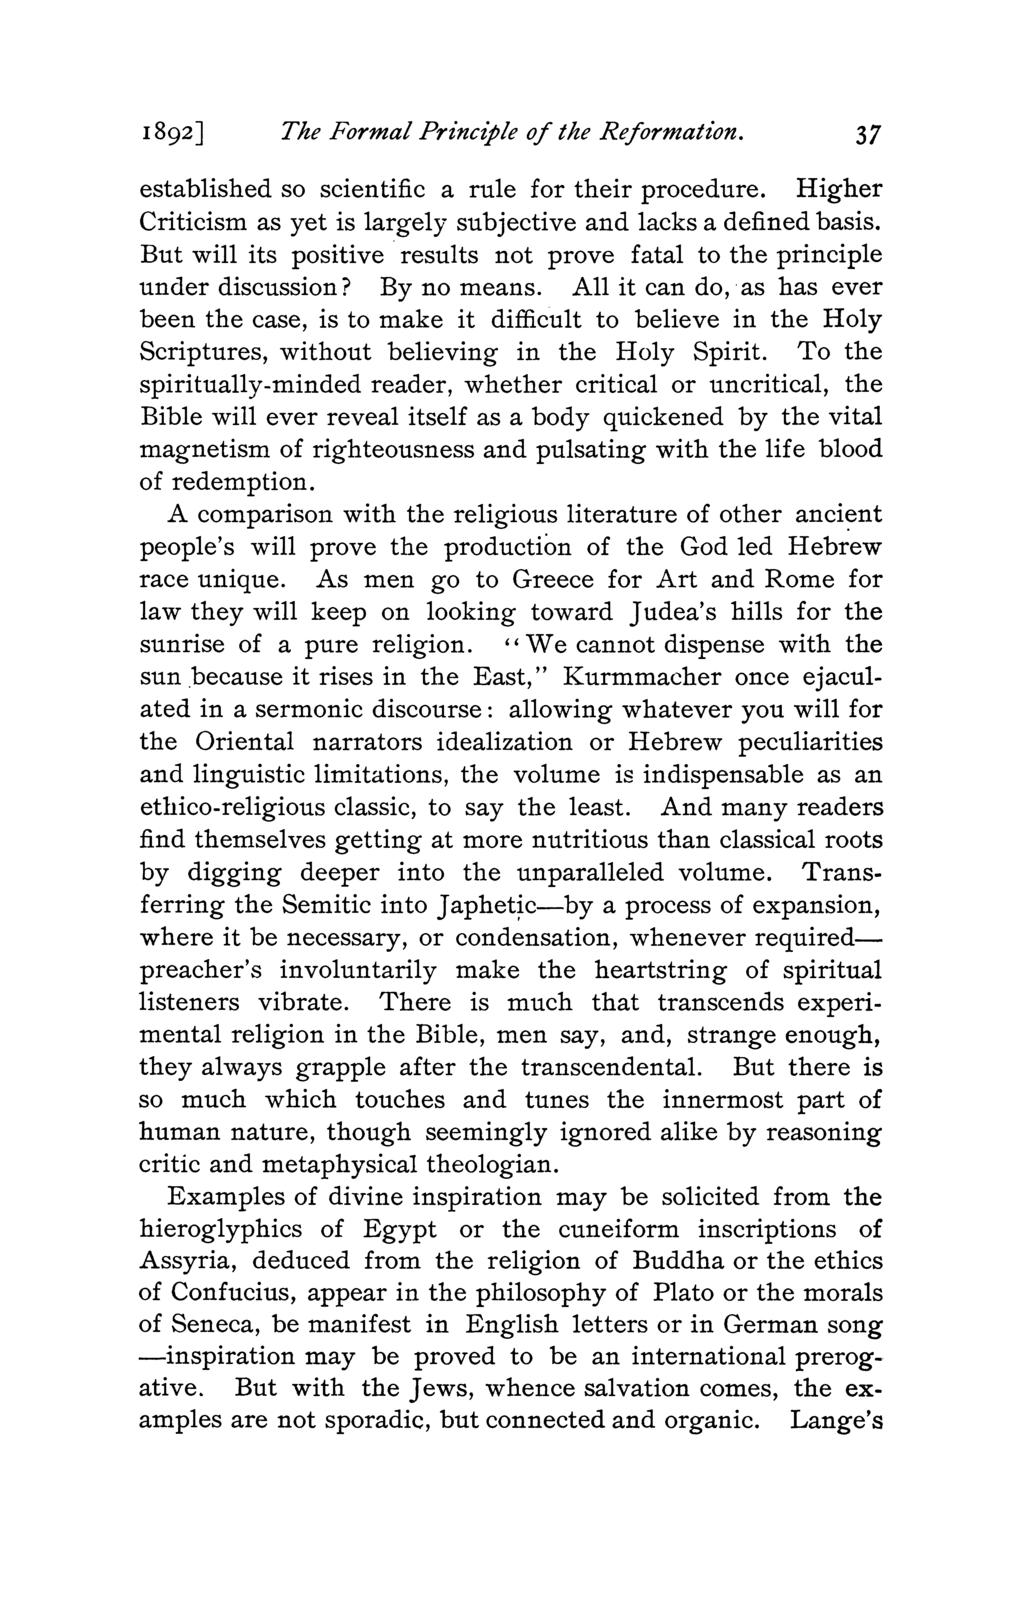 1892] The Formal Principle of the Reformation. 37 established so scientific a rule for their procedure. Higher Criticism as yet is largely subjective and lacks a defined basis.